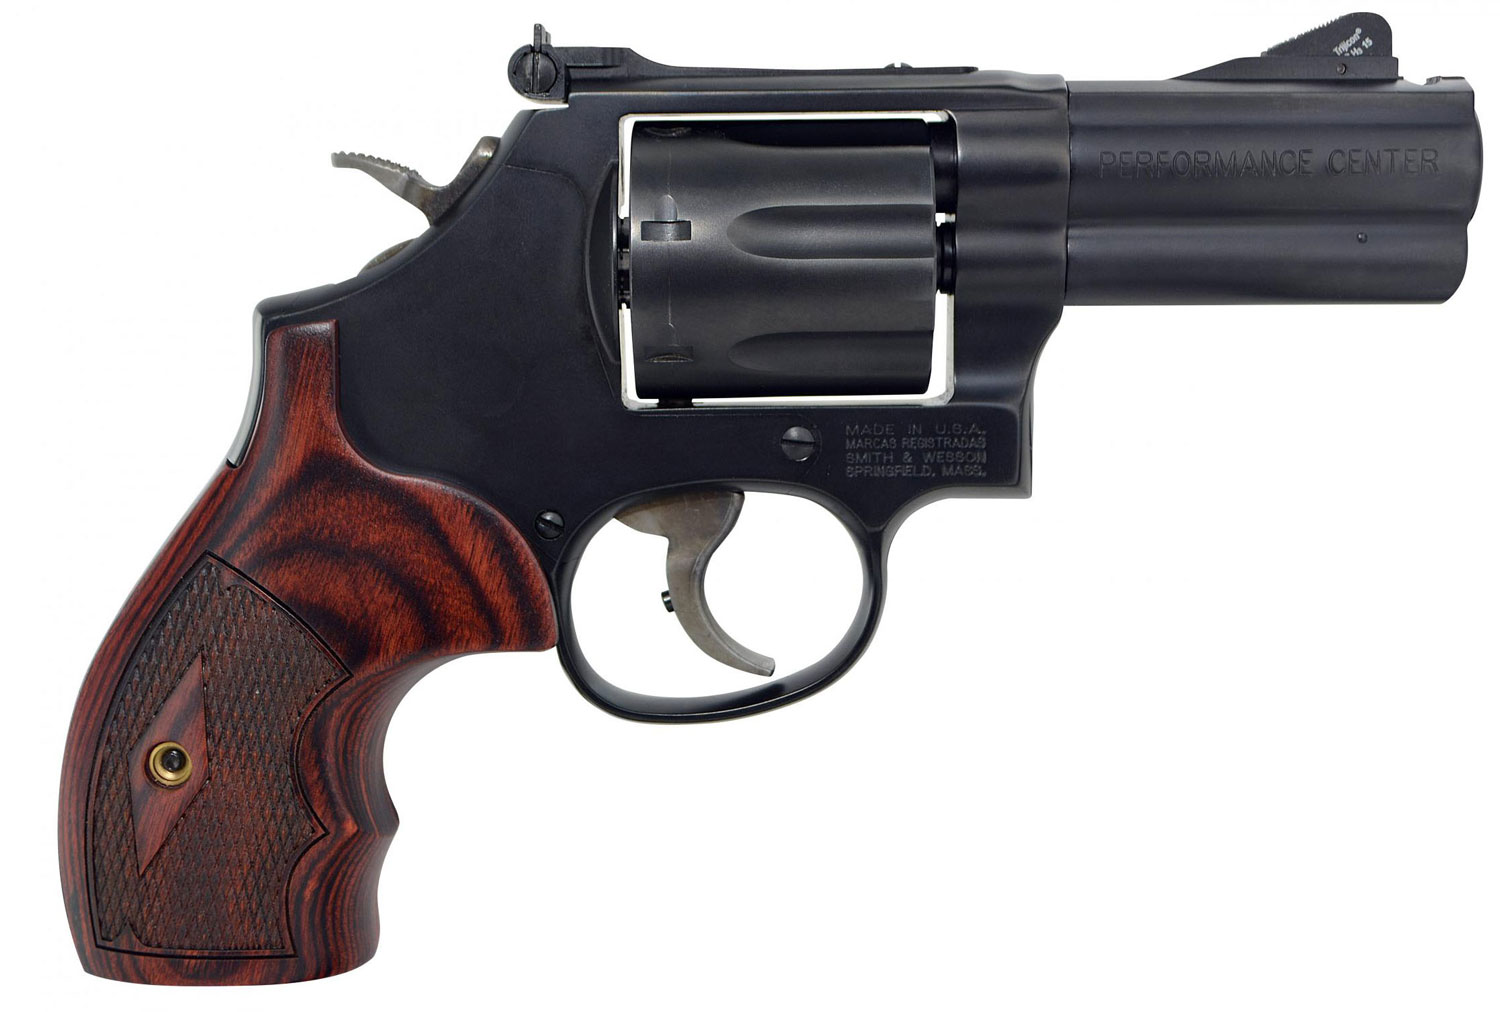 Smith & Wesson 170170 Performance Center 586 L-Comp 357 Mag 7rd 3